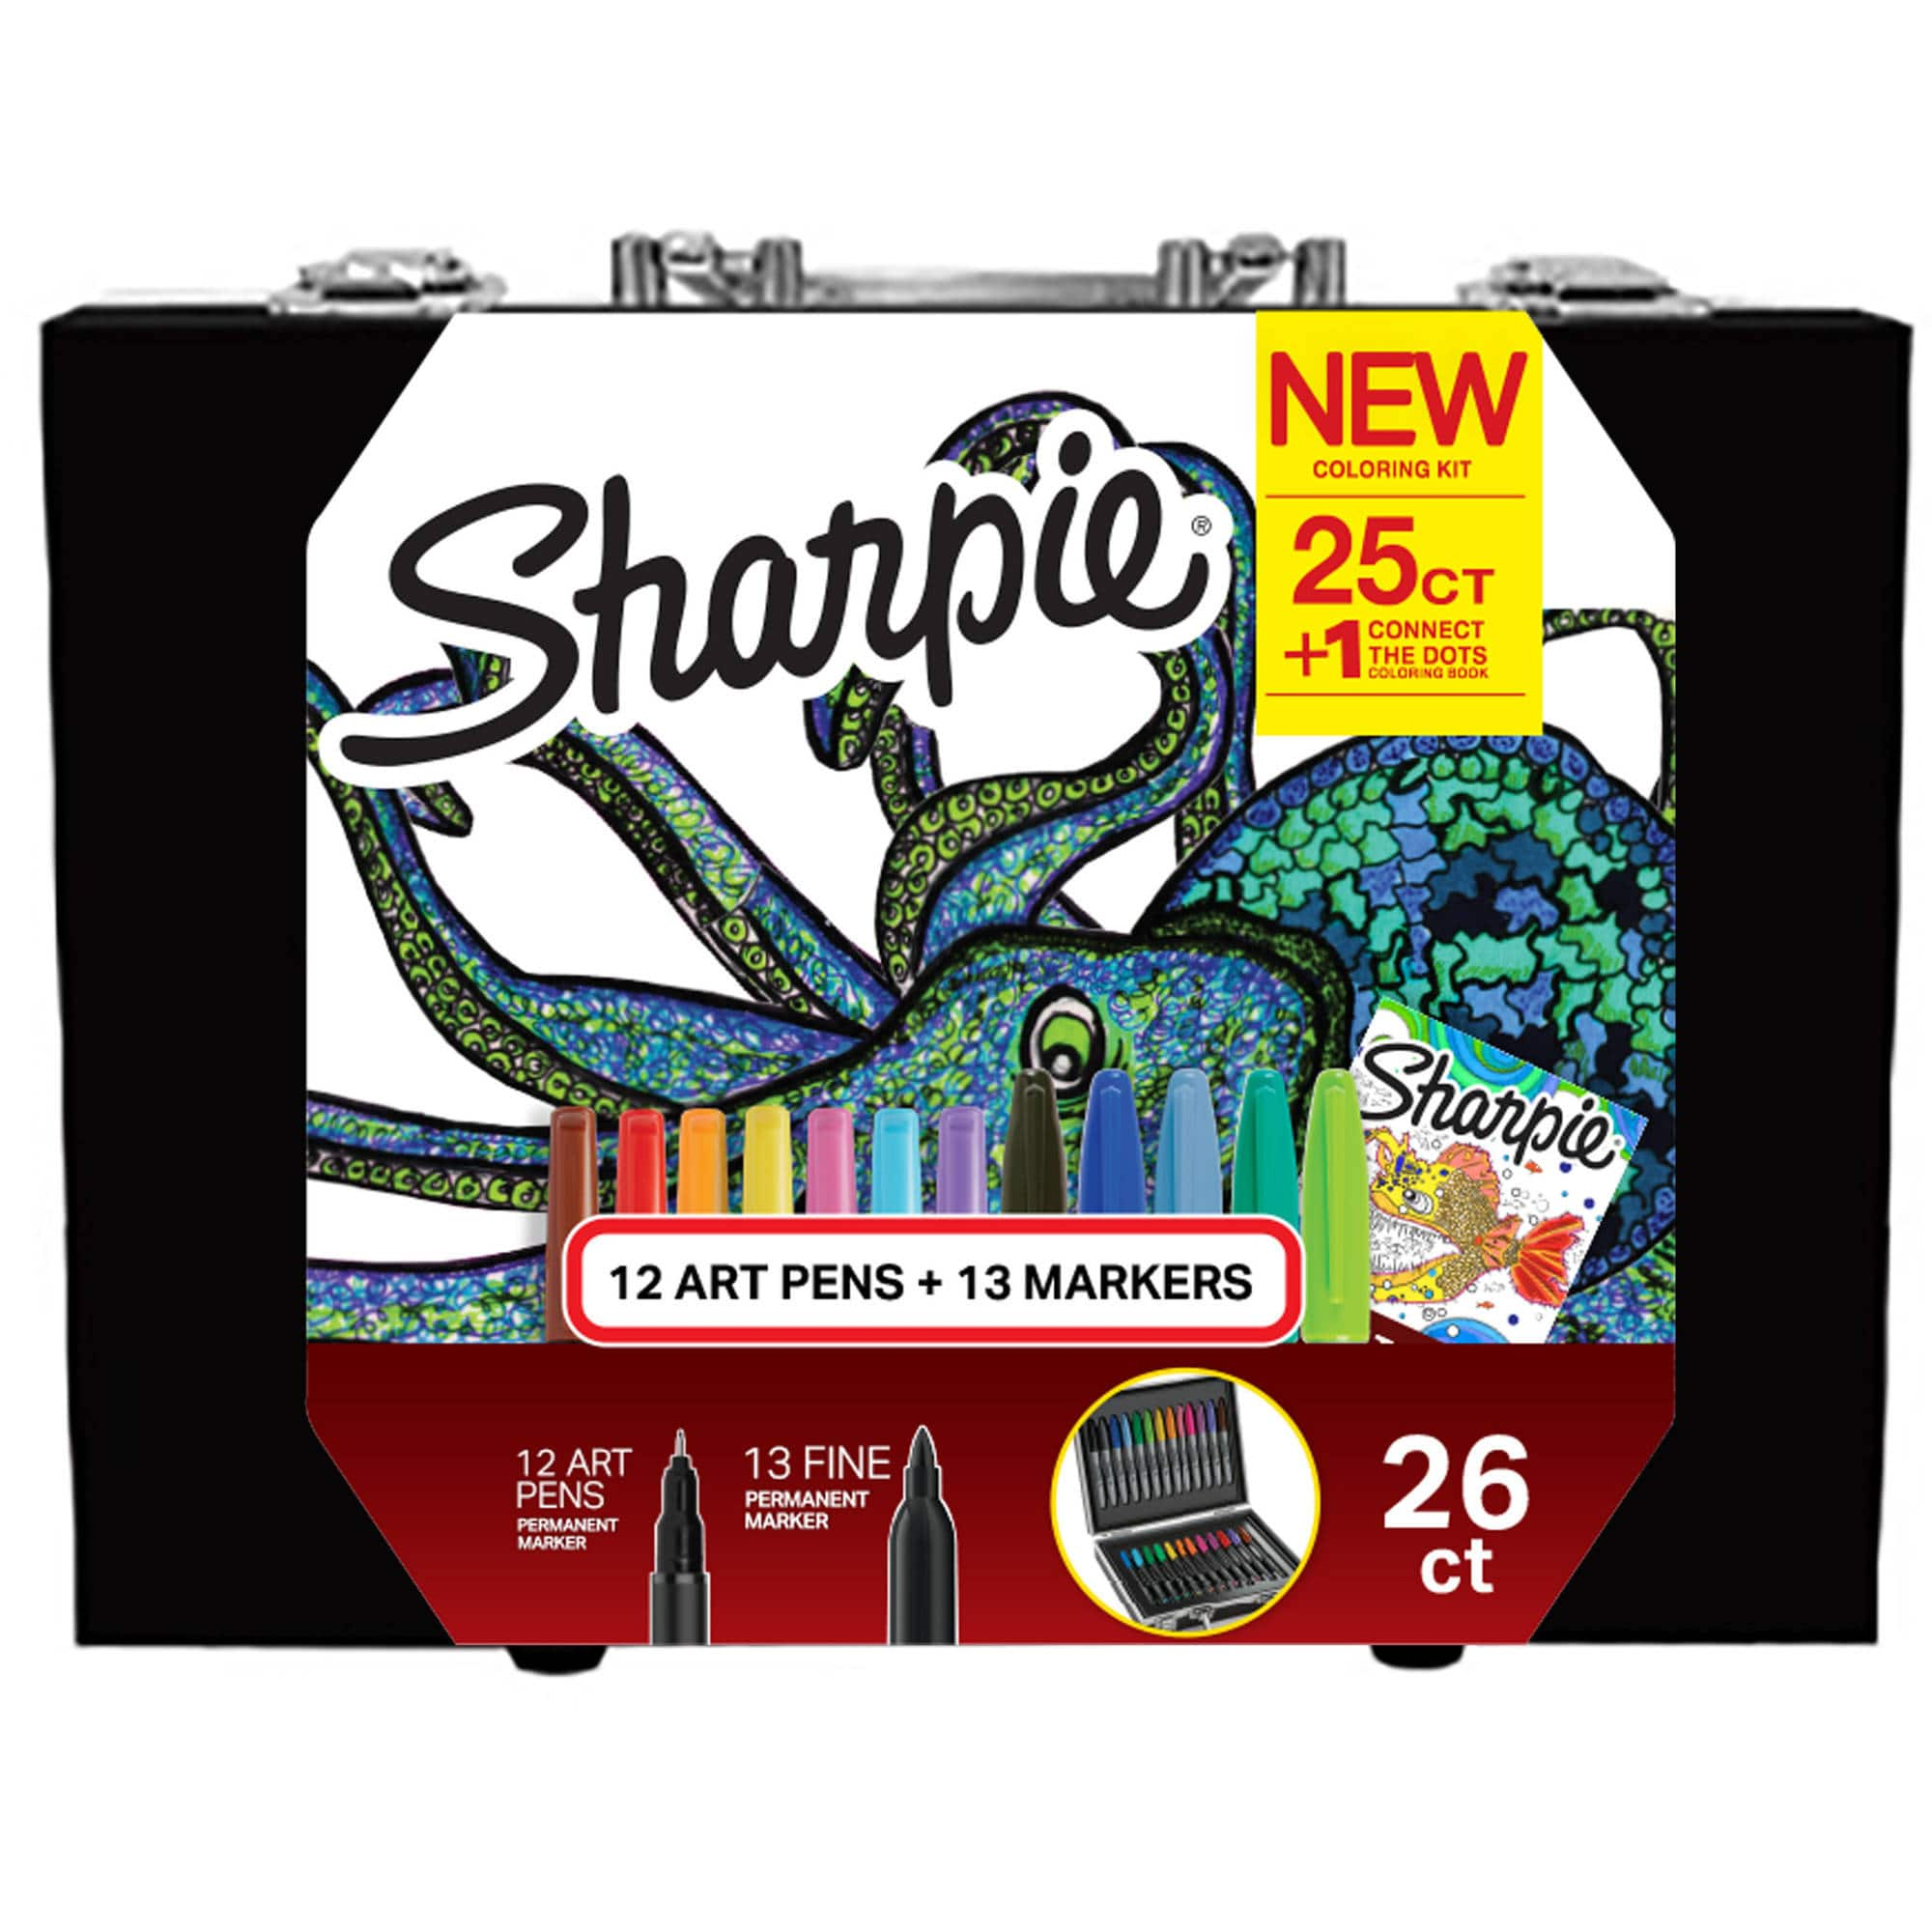 Sharpie Coloring Kit with Permanent Markers, Art Pens and Coloring Booklet, Hard Case, 26 Count $4.5